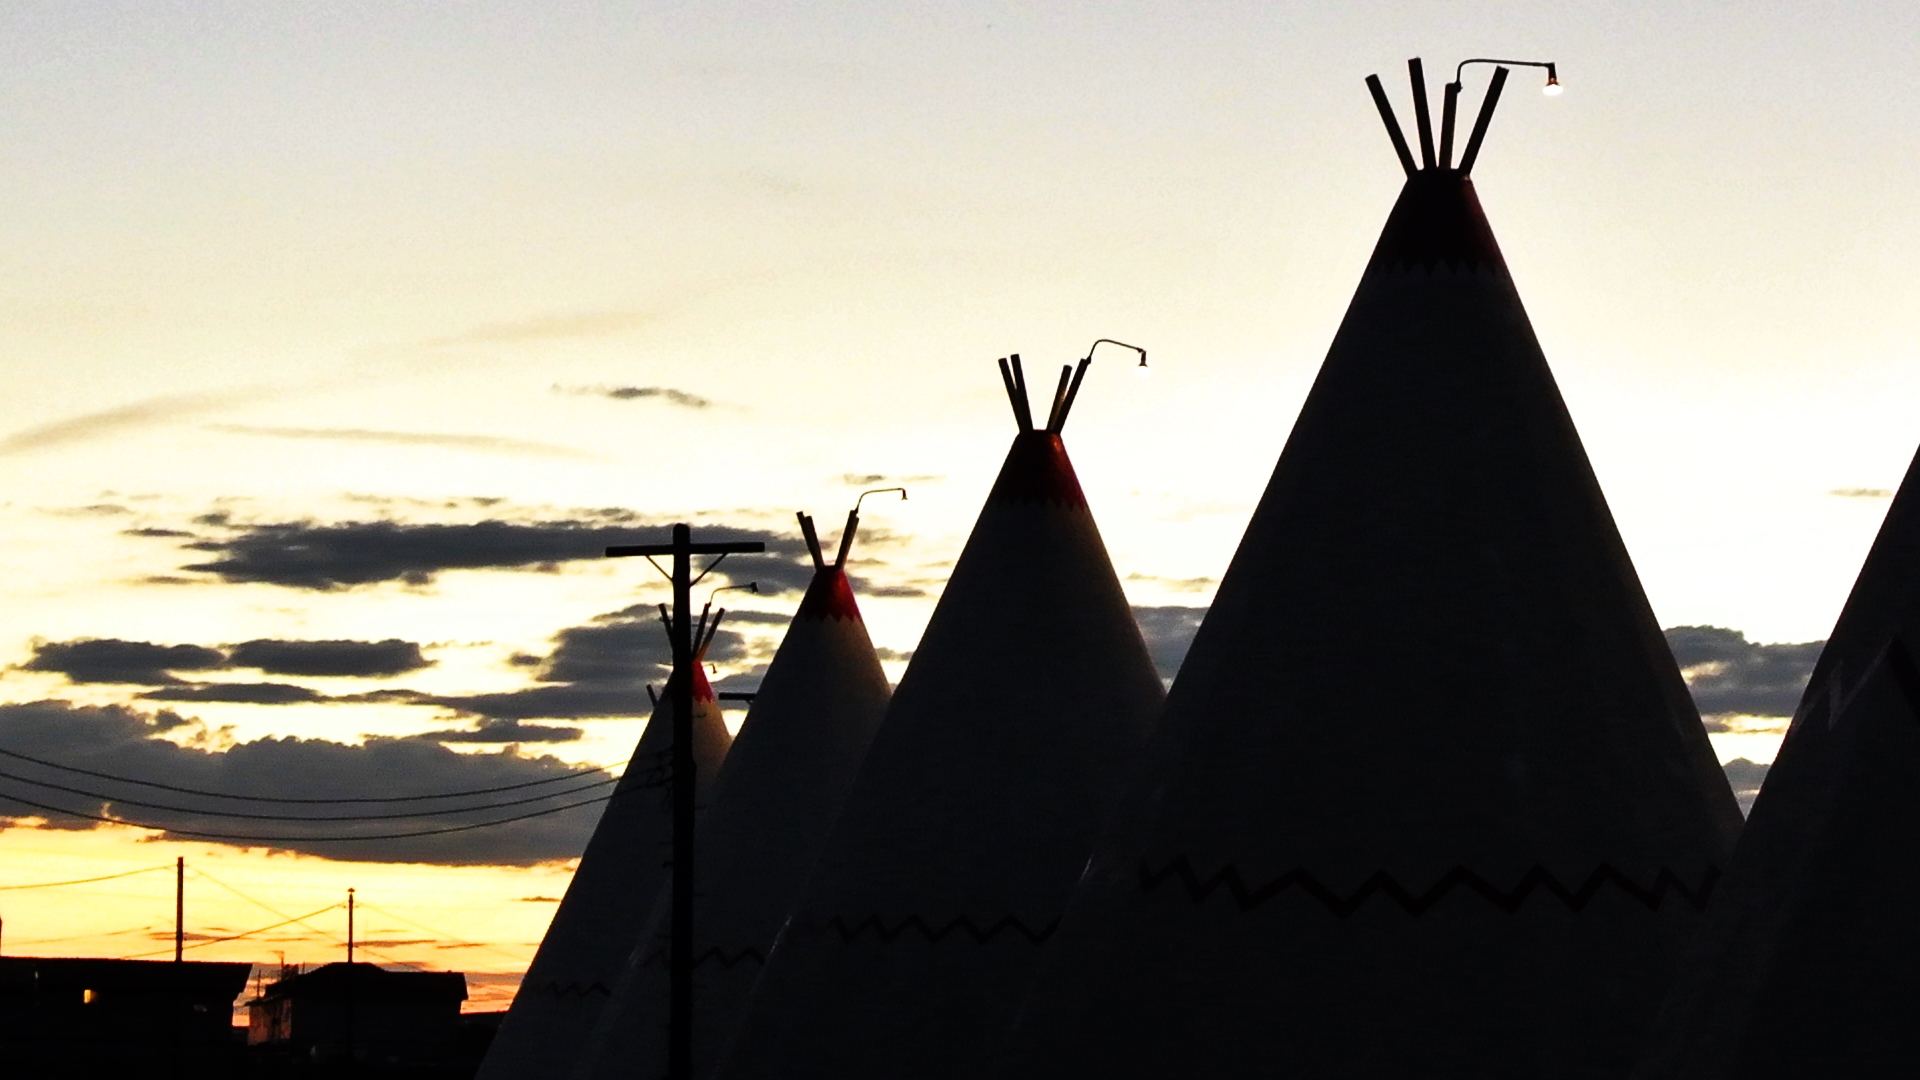 """The Wigwam Motels, also known as the """"Wigwam Villages"""", is a motel chain in the United States built during the 1930s and 1940s."""